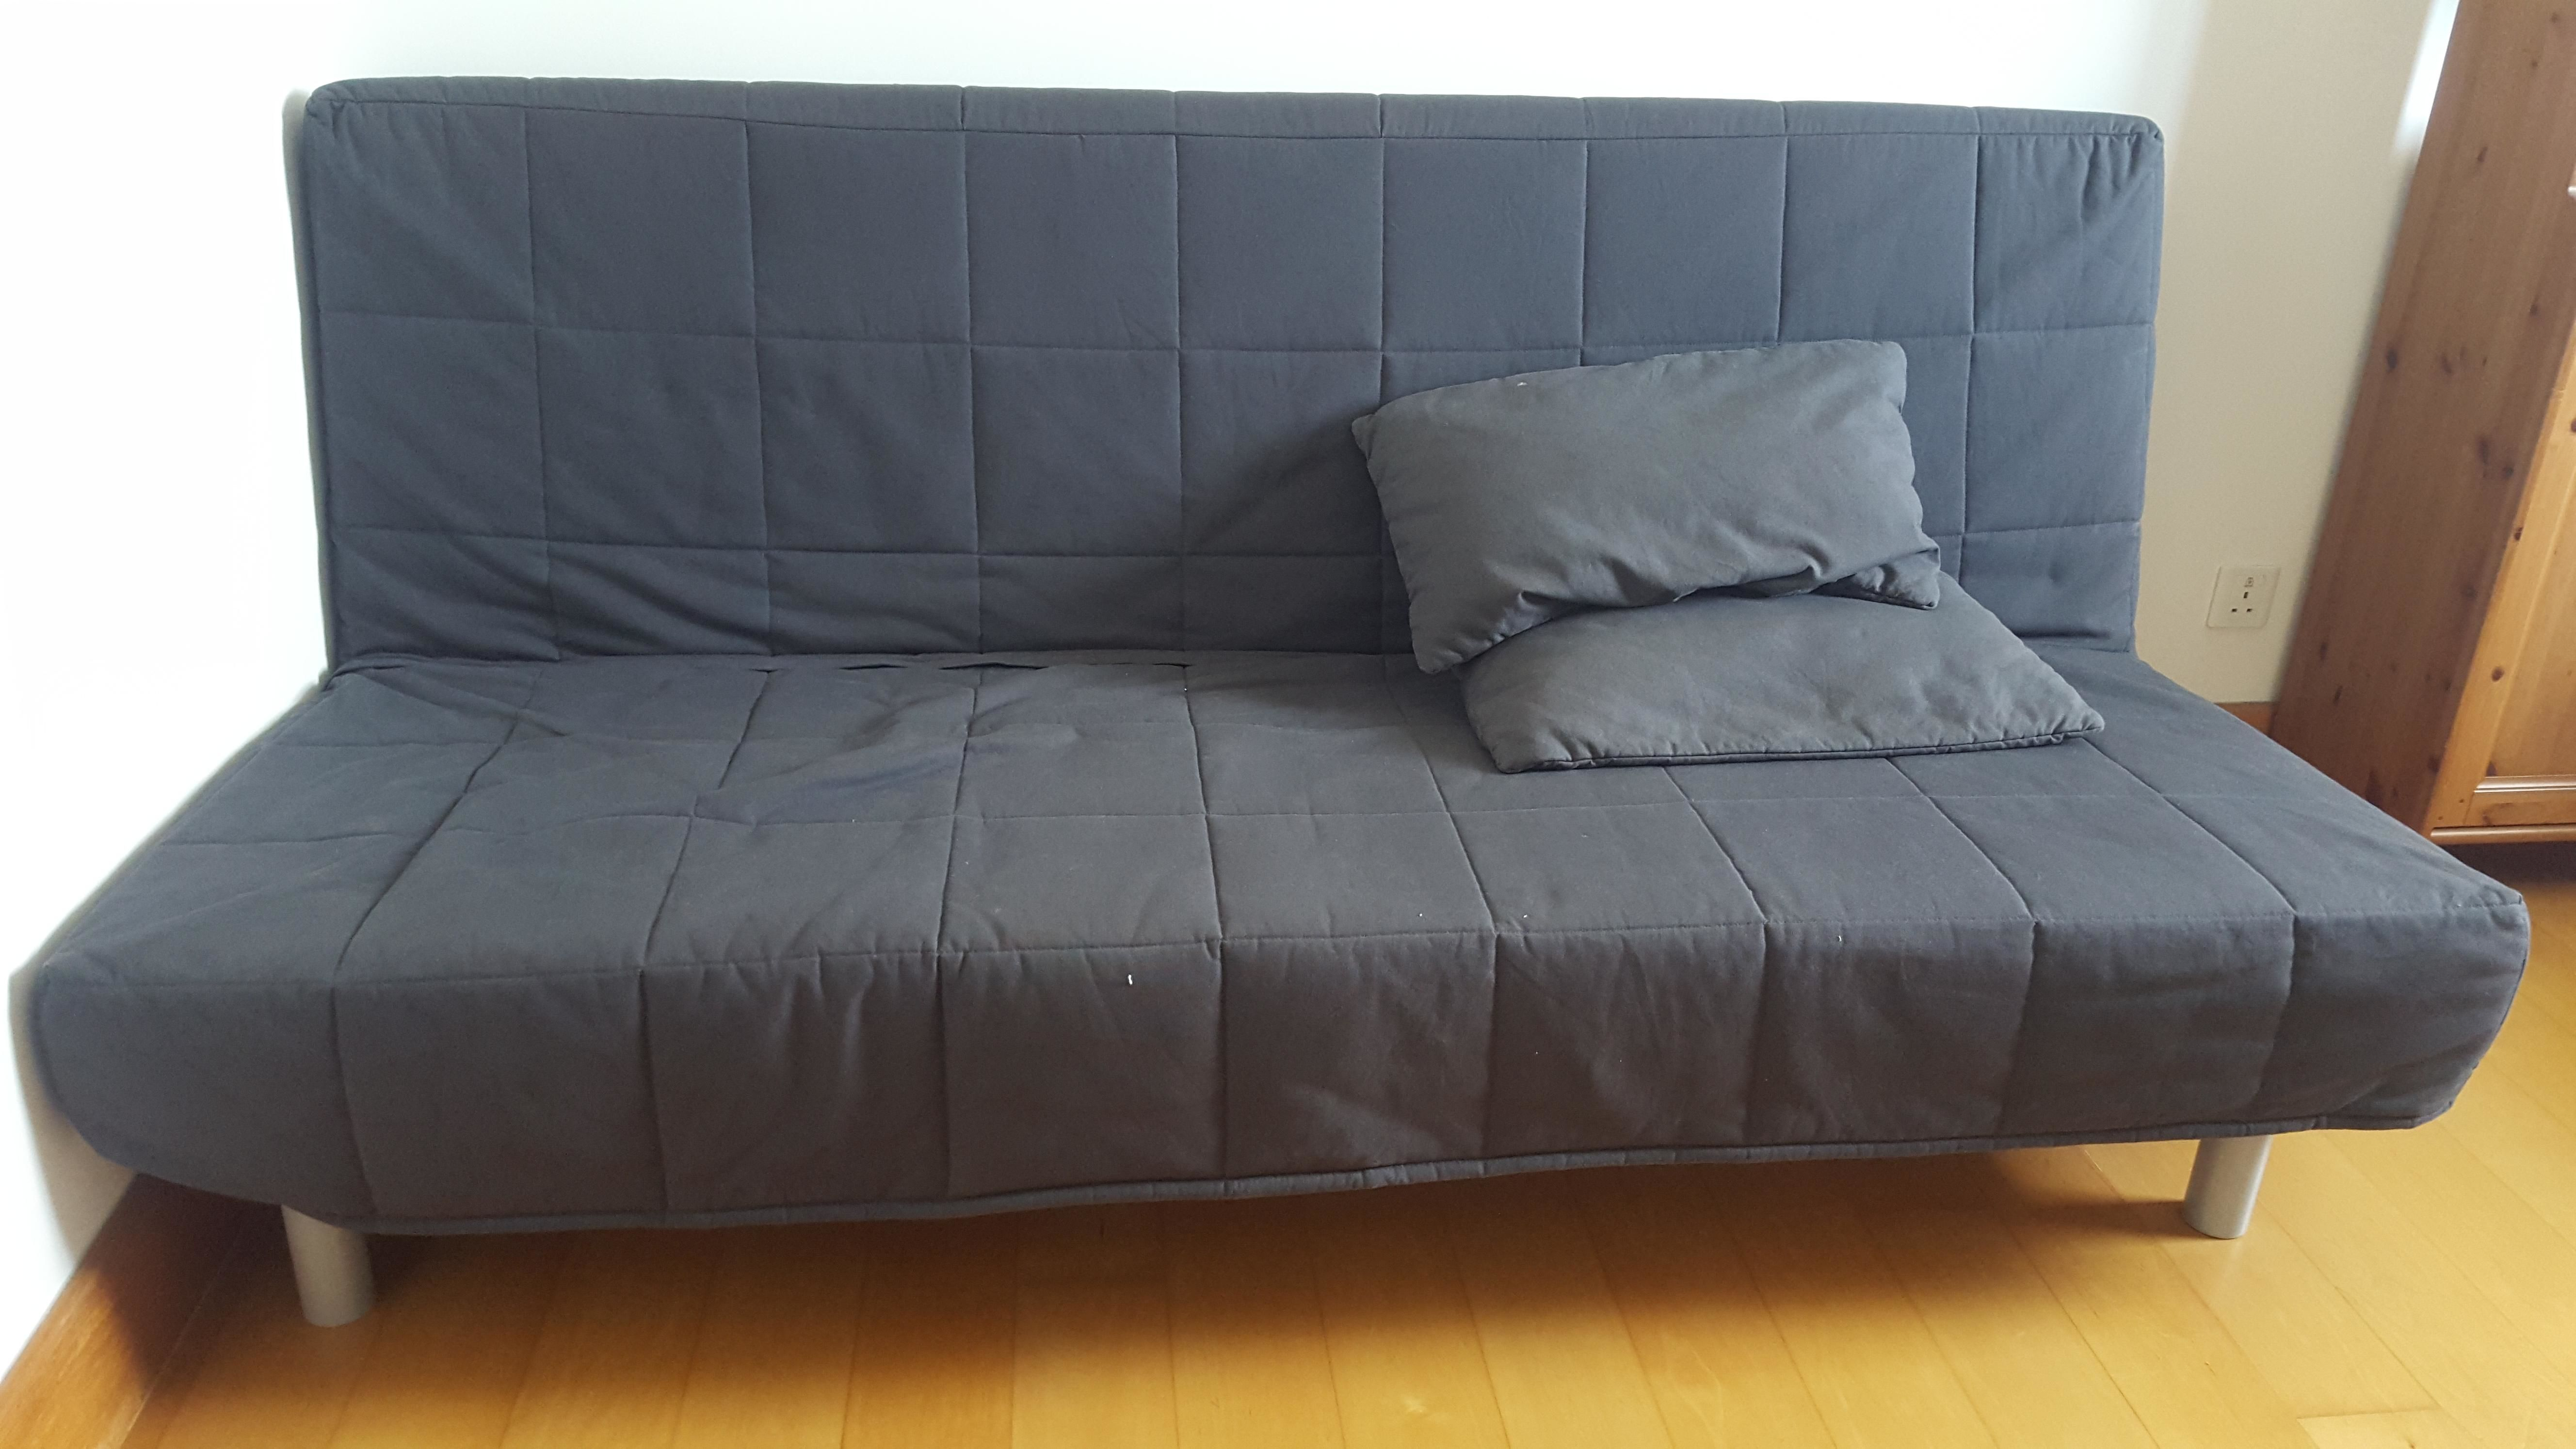 Ikea sofa bed Home furniture and mattress